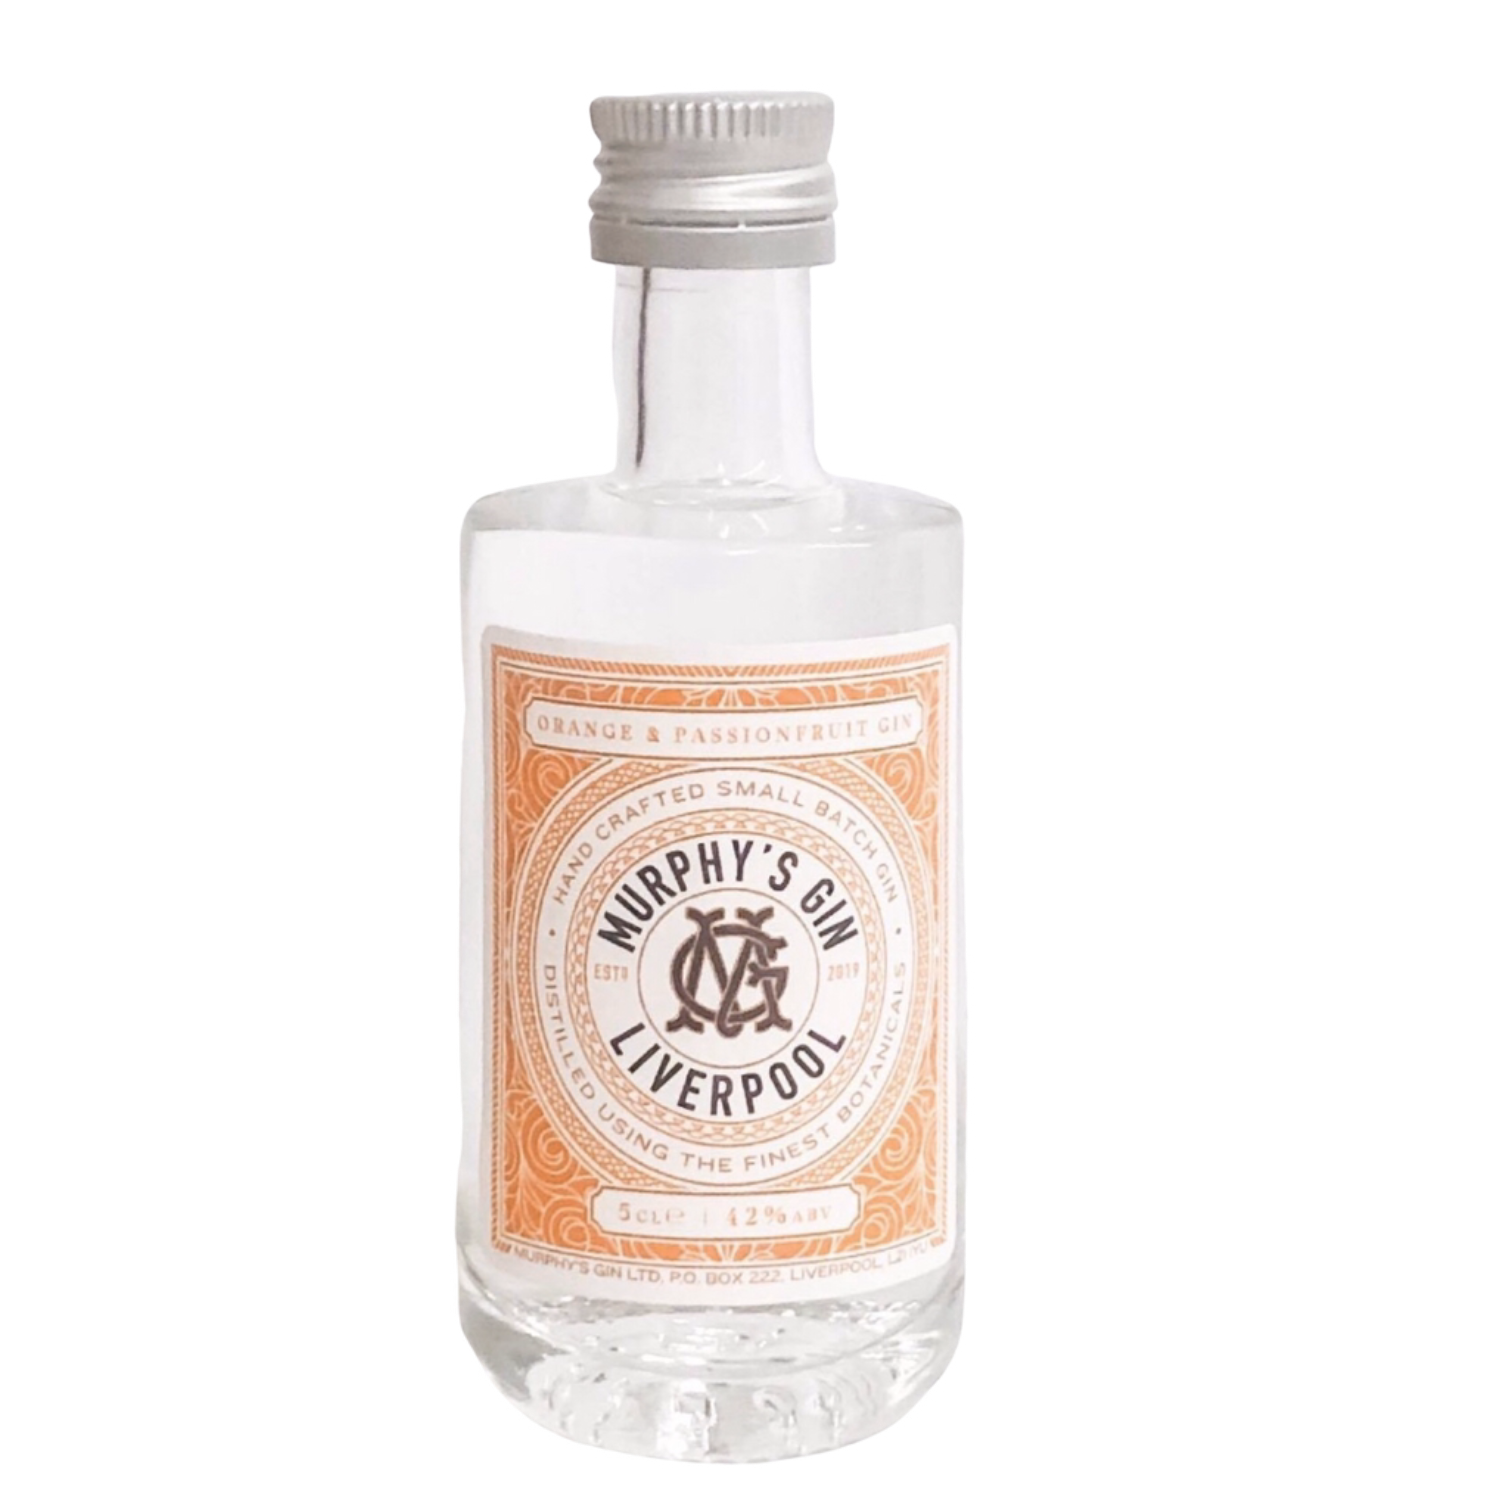 Murphy's Orange and Passionfruit Gin Miniature 50ml